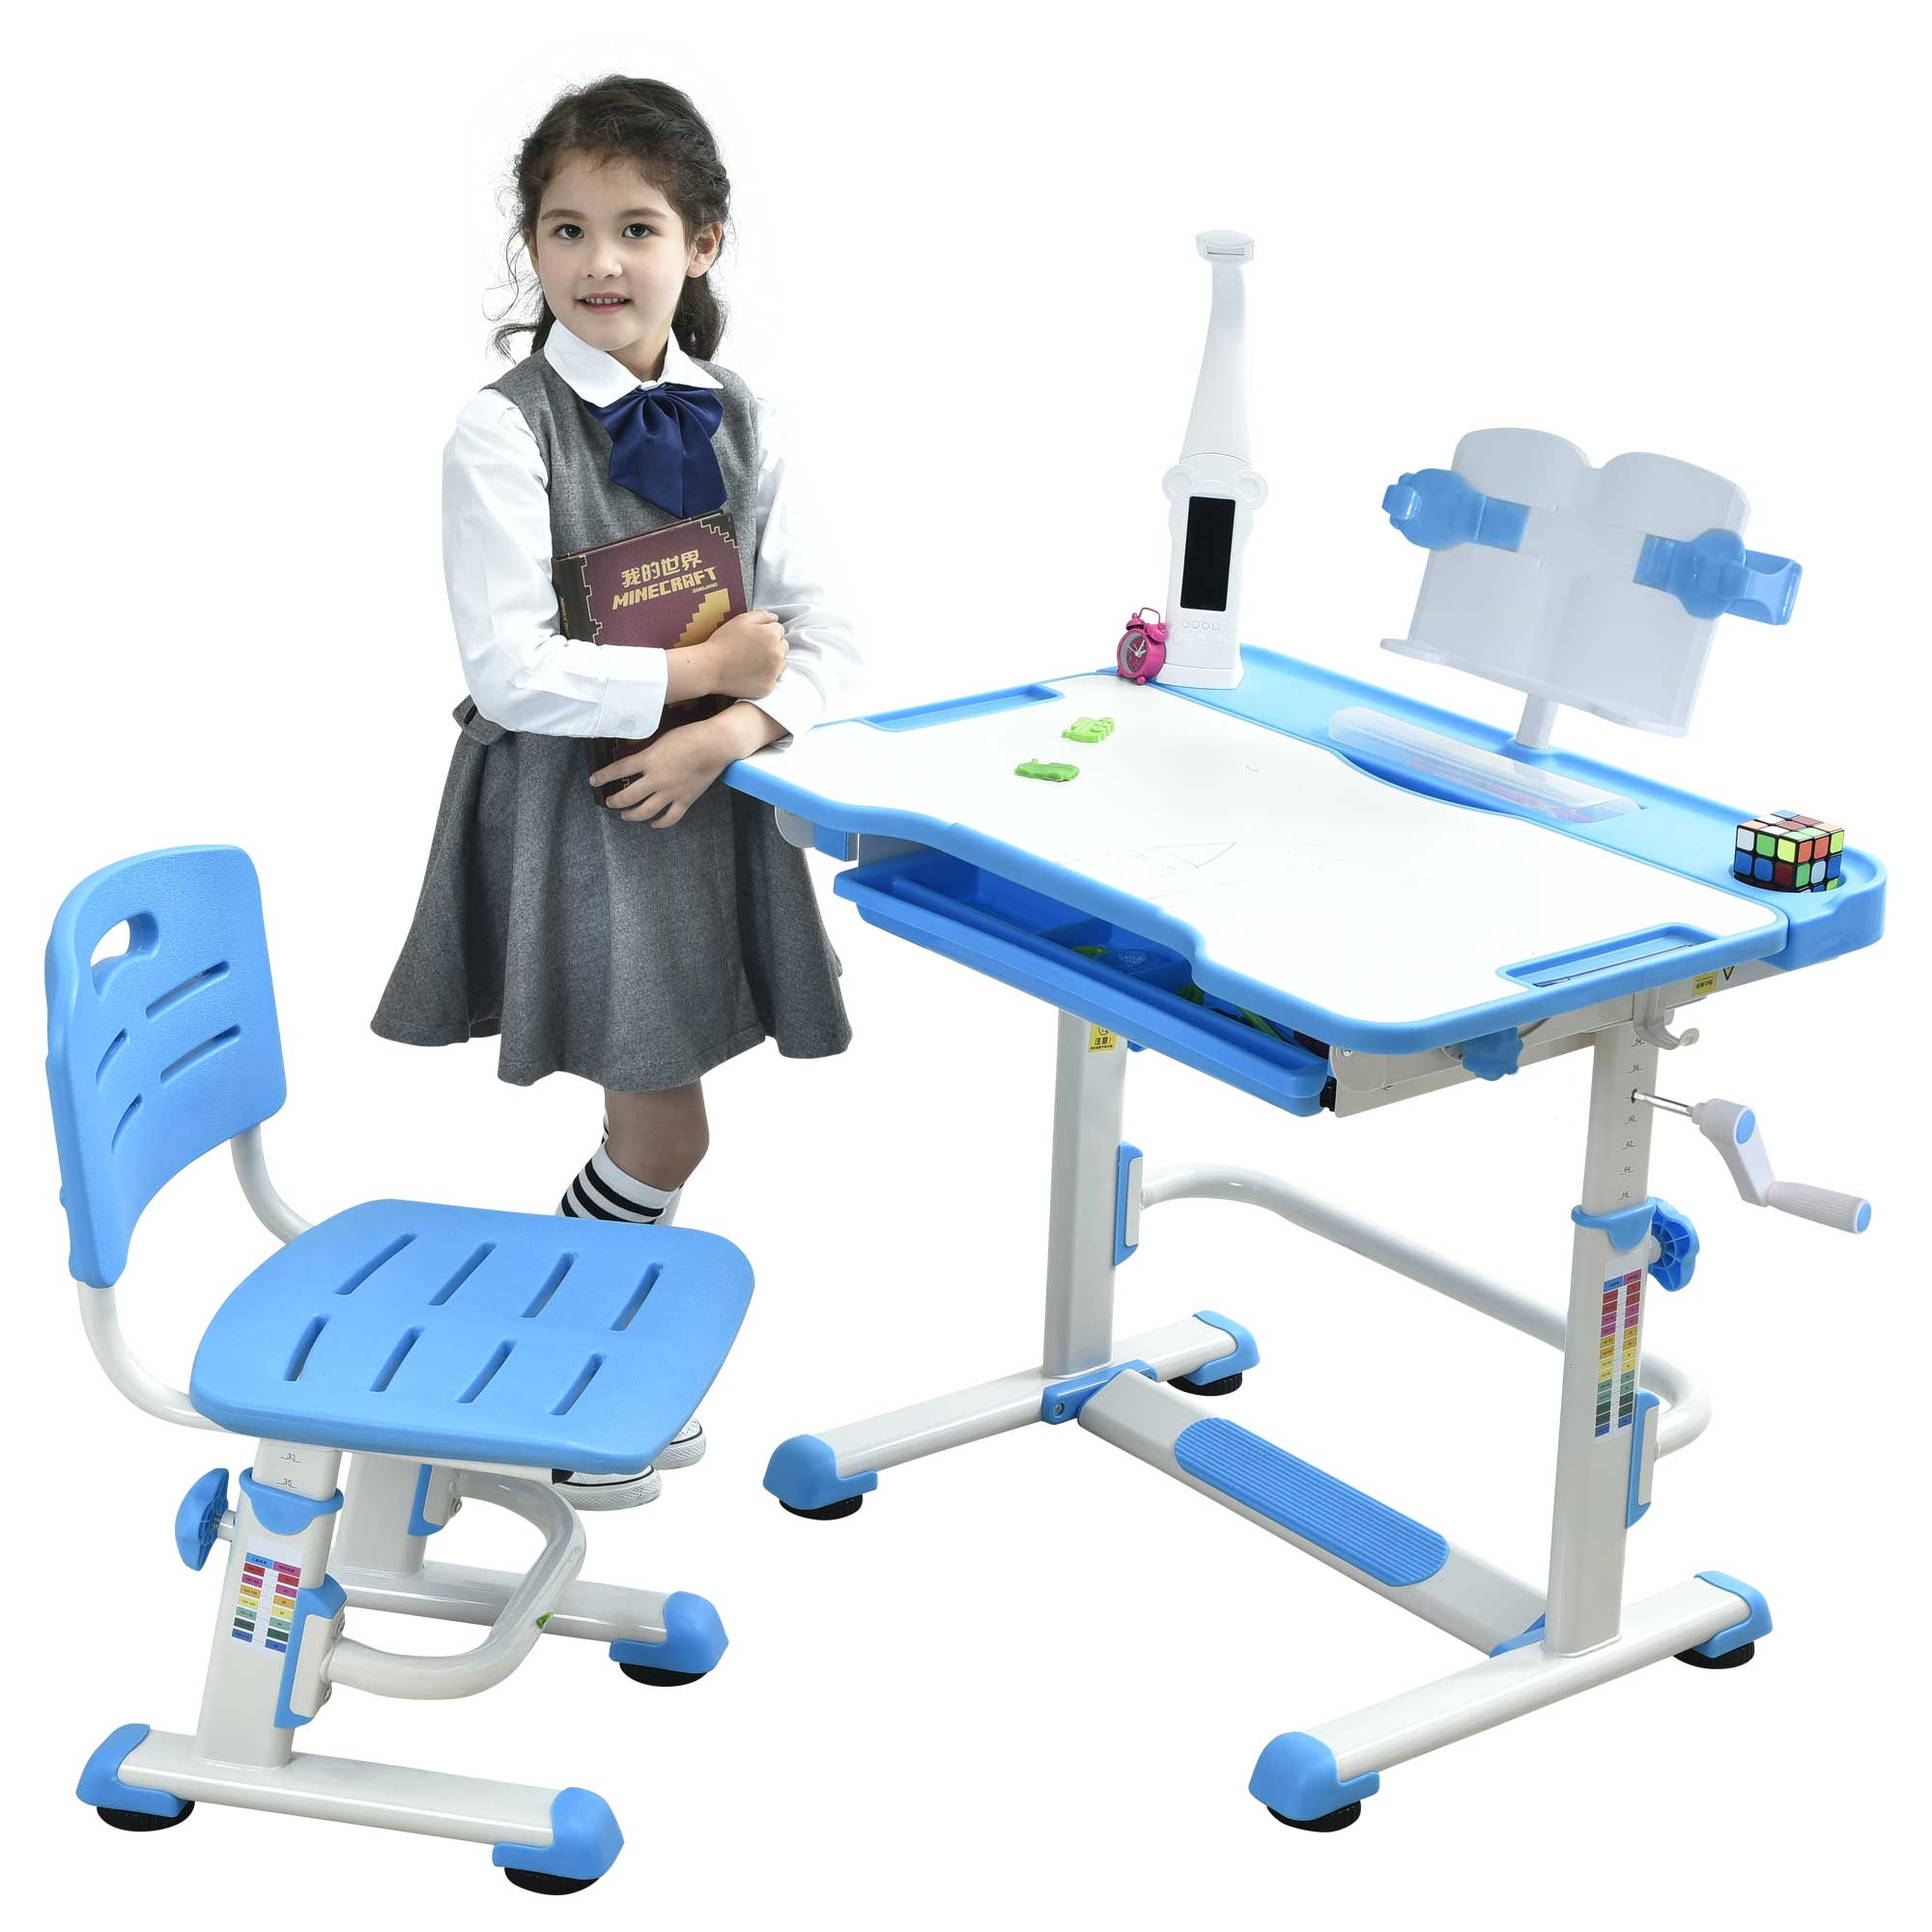 ergonomic-kids-desk-chair-study-table-Sprite-blue-desk-for-kids-01